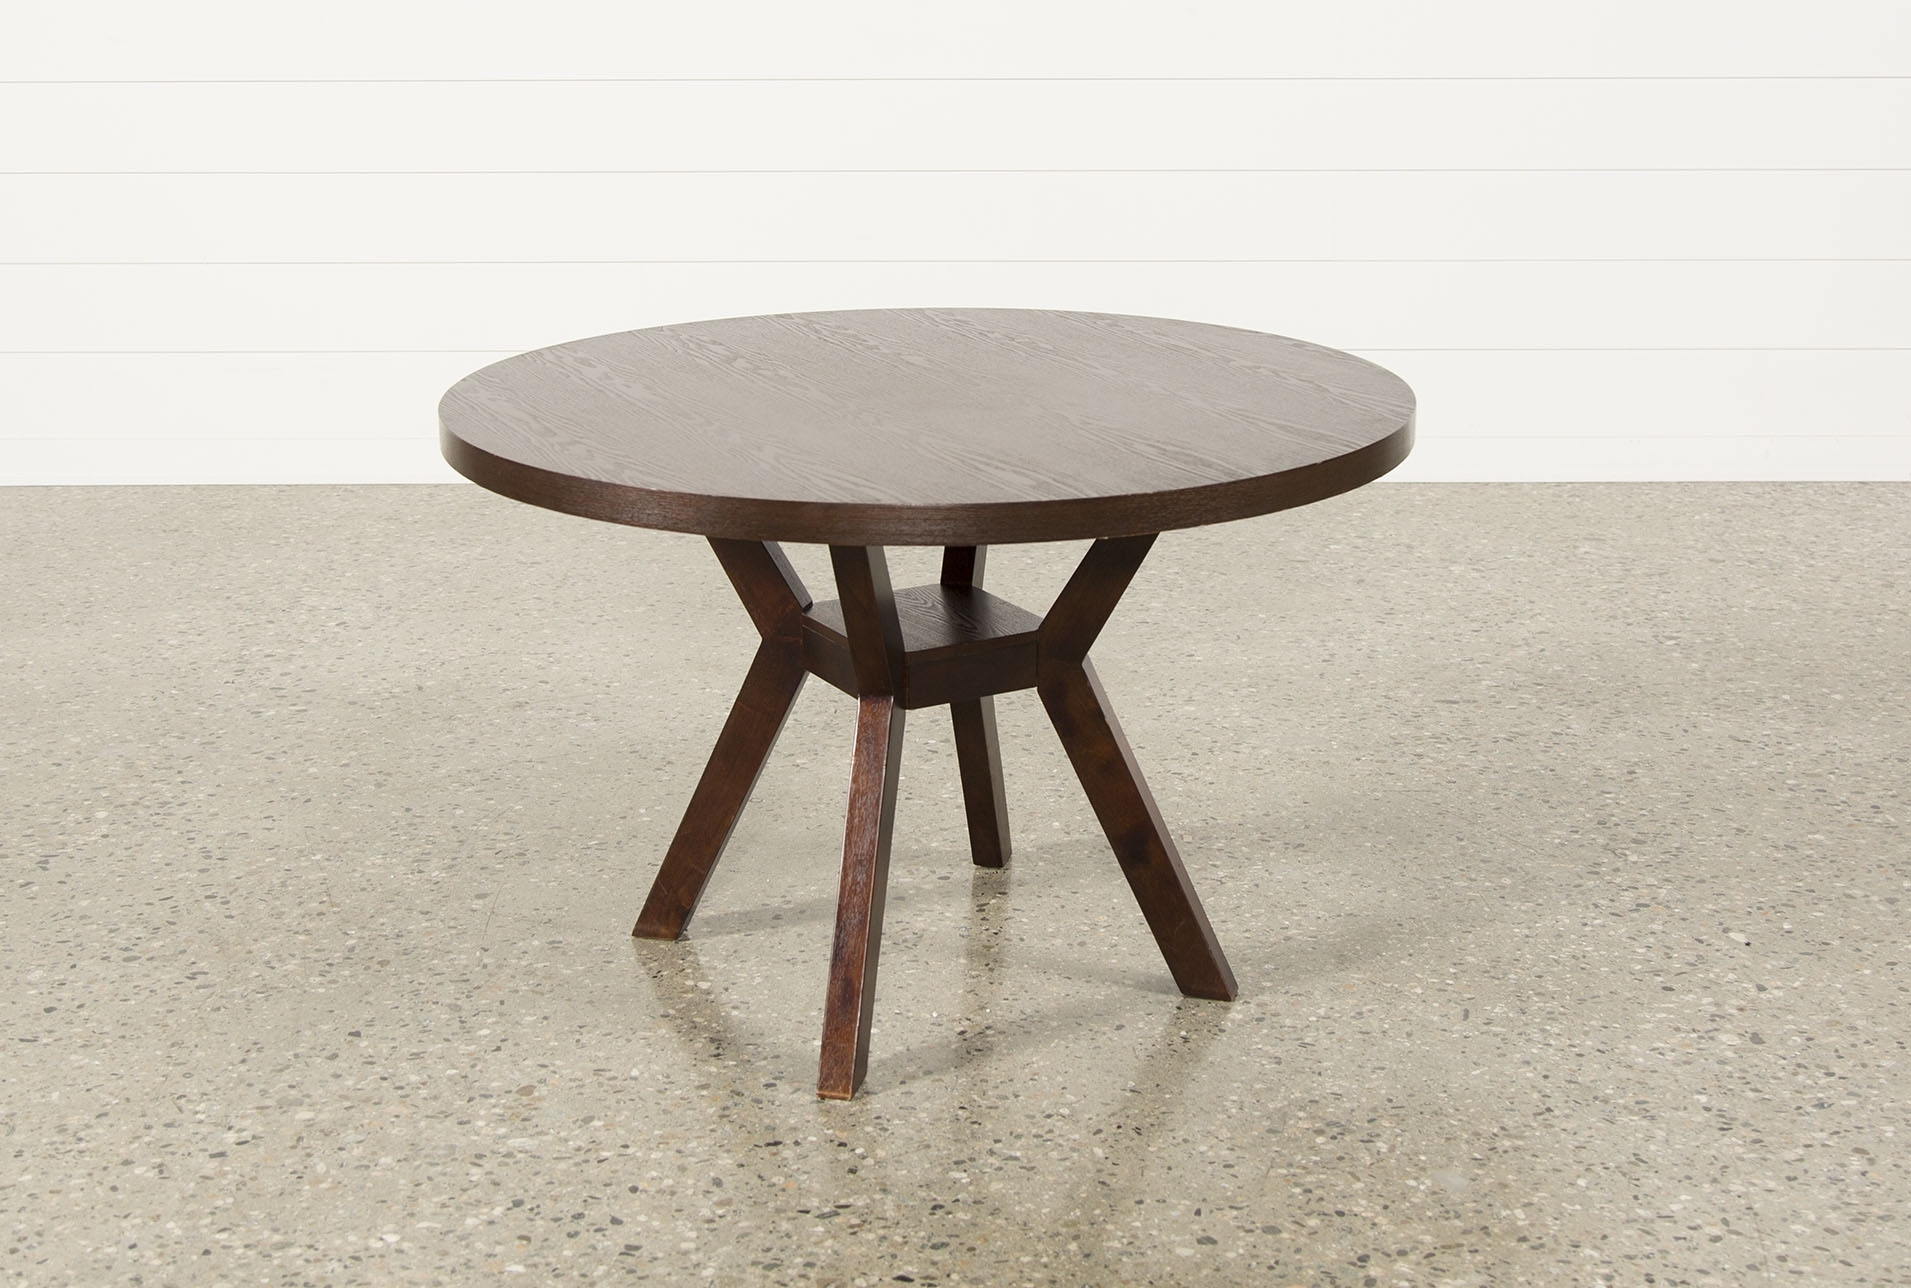 Macie Round Dining Table | Products | Pinterest | Round Dining Table Inside Newest Macie Round Dining Tables (Photo 2 of 20)